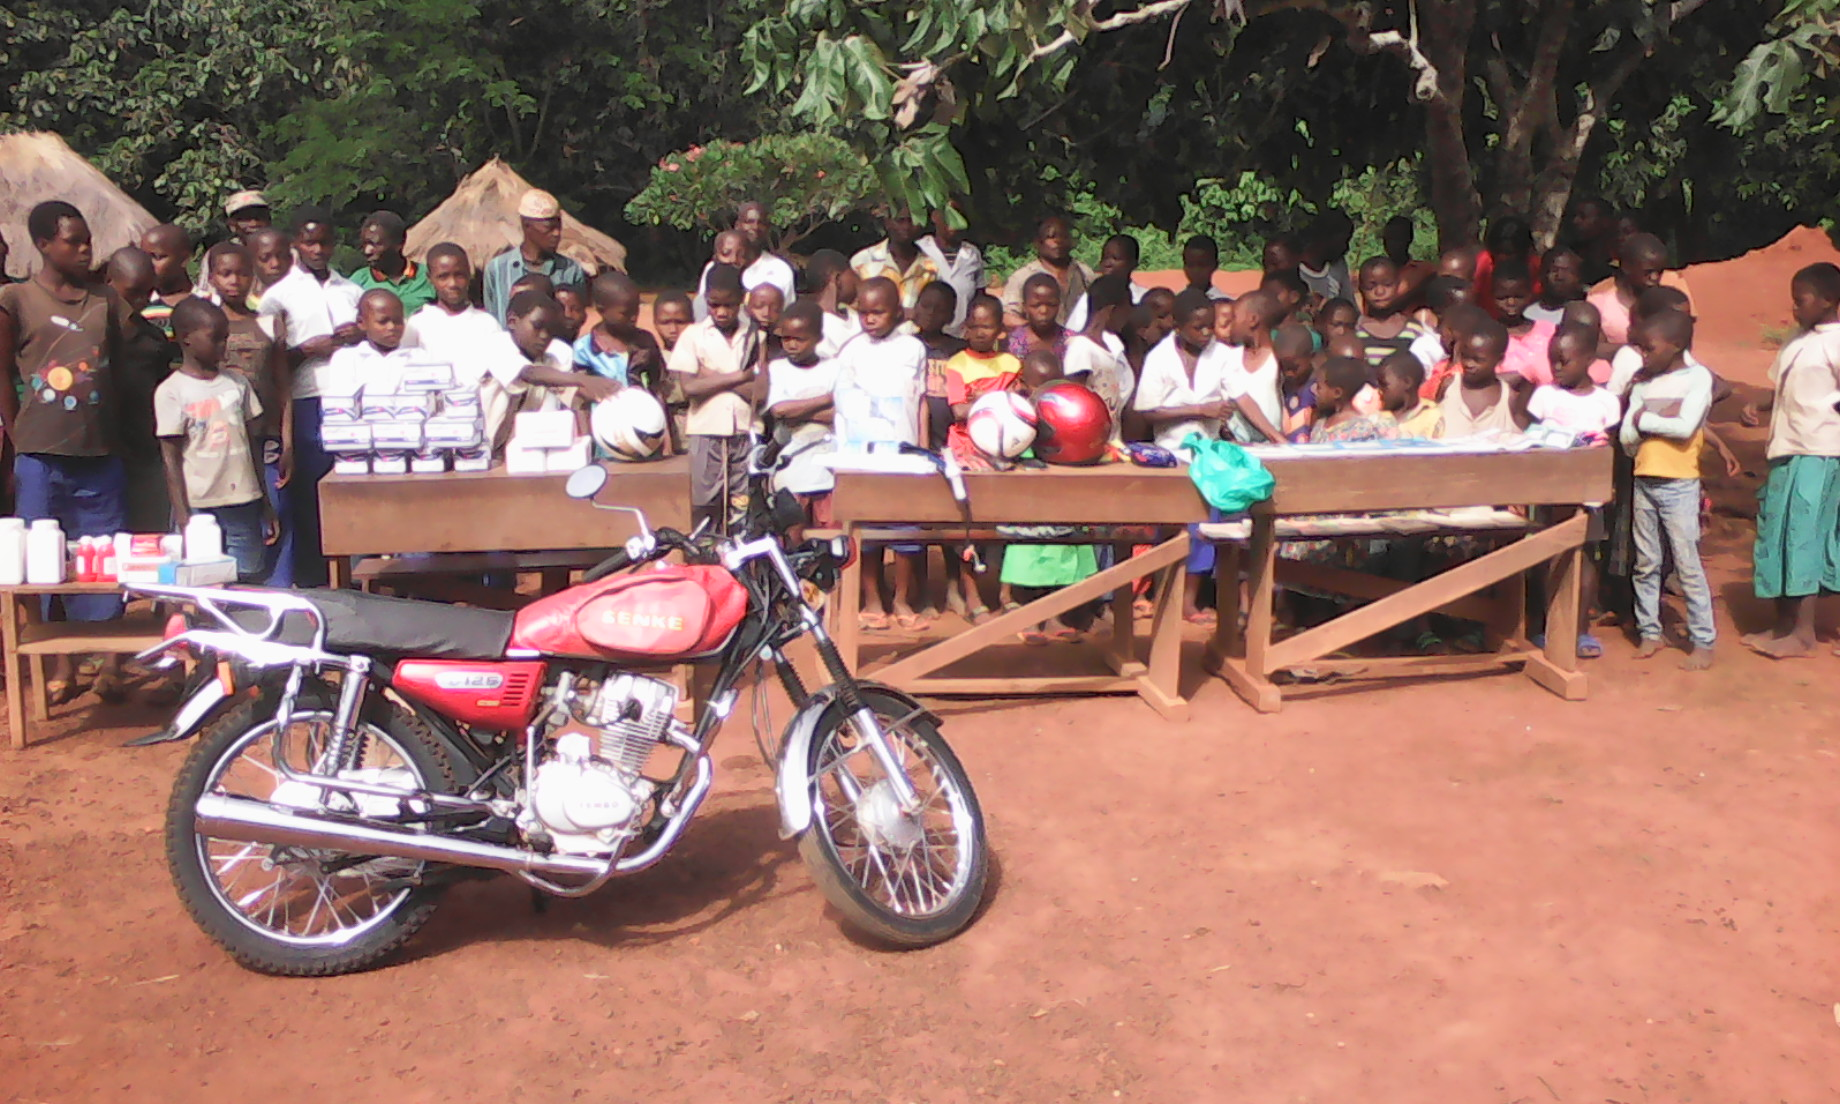 Medical and School Supplies on display at the RainShine School in Epi, Democratic Republic of the Congo